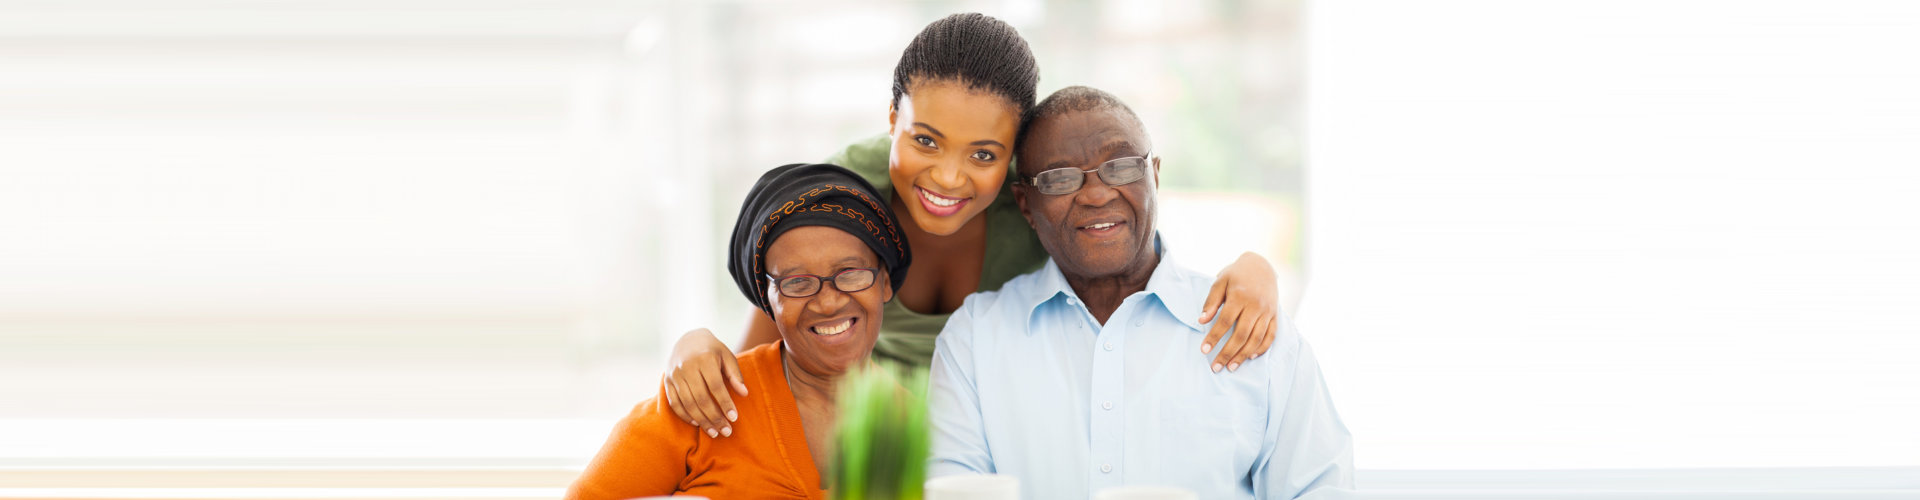 caregiver and senior couple are smiling